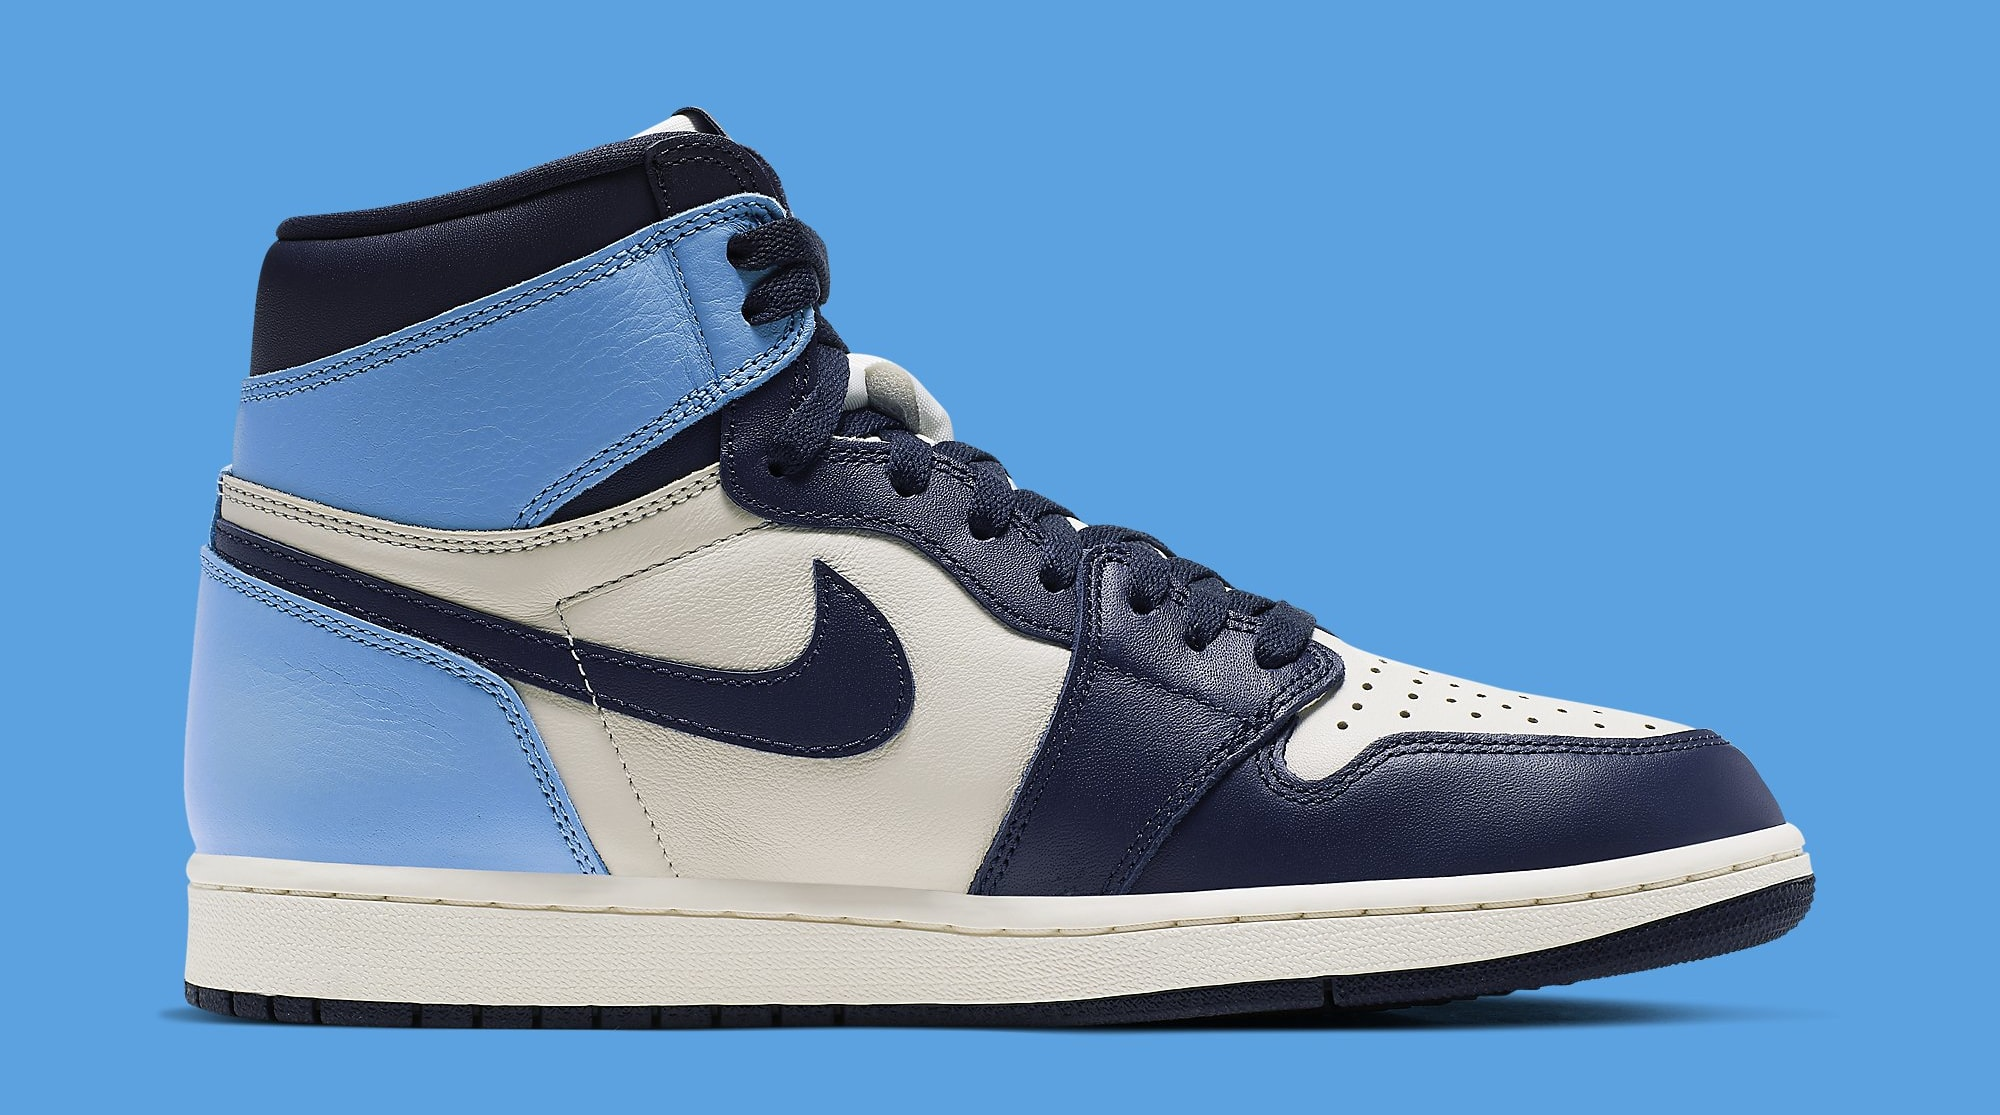 nike air jordan 1 obsidian university blue